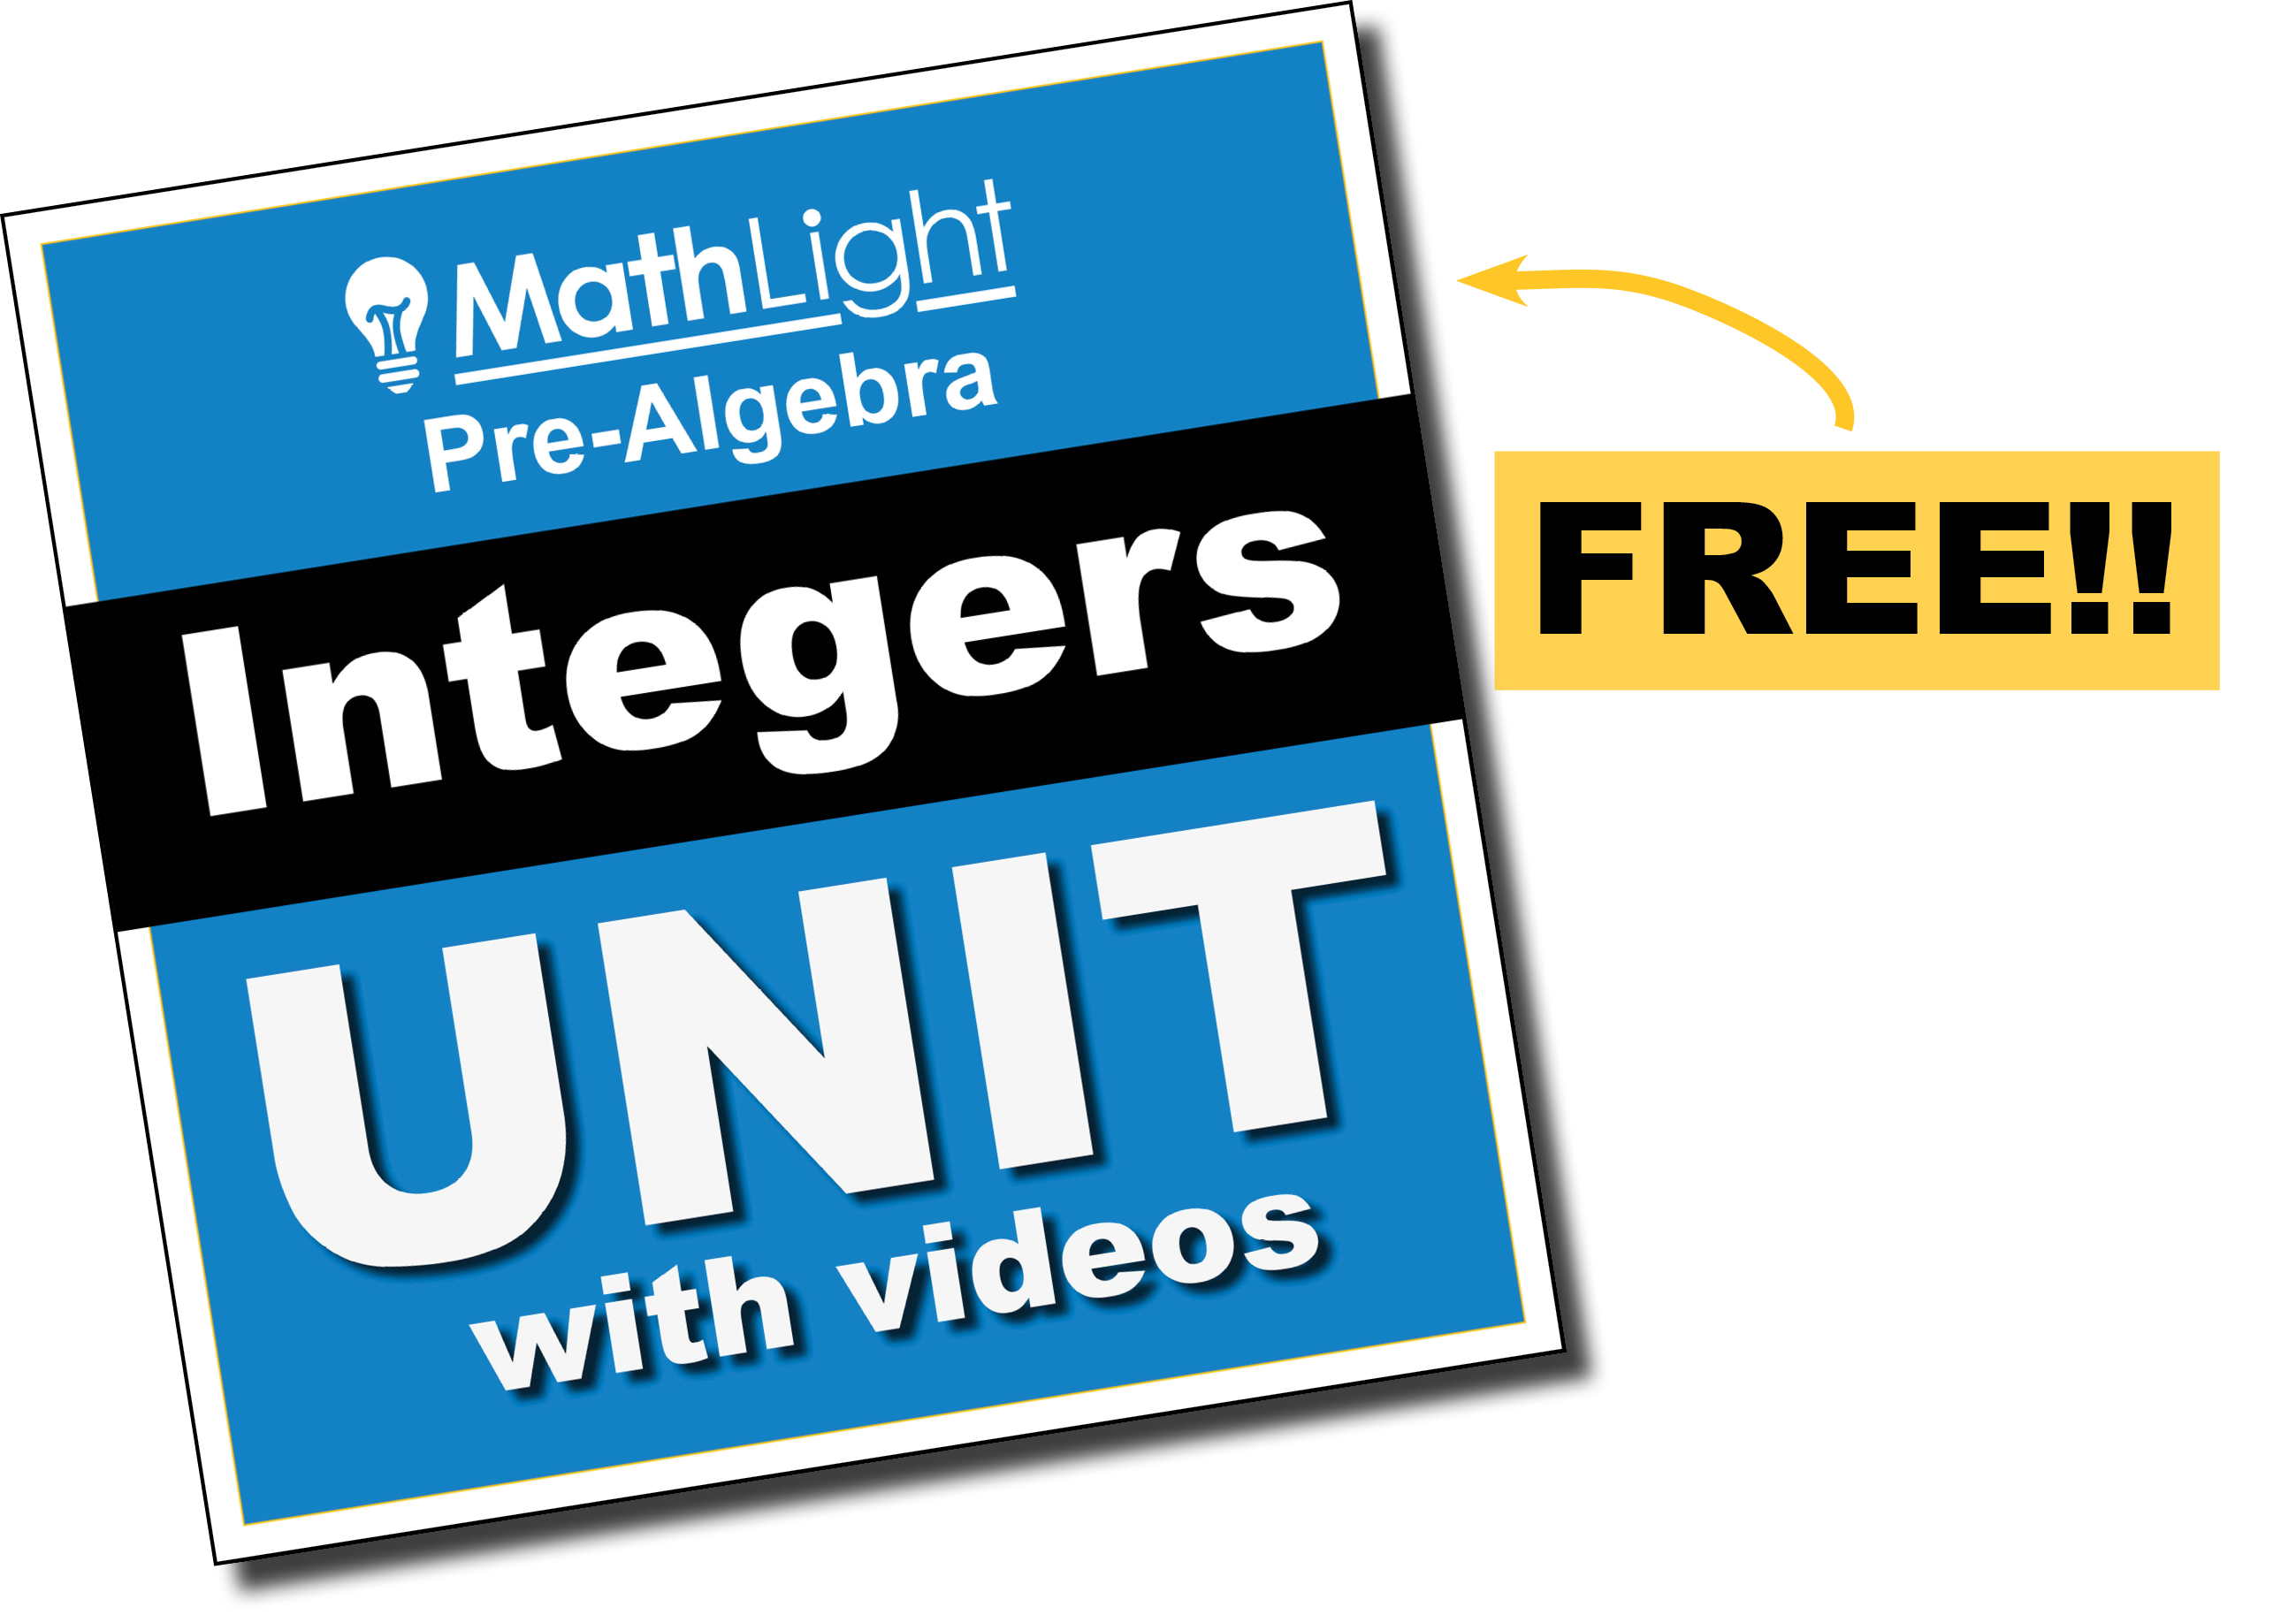 free pre algebra integers unit with videos - perfect for flipping your class. includes videos, student notes, practice / homework, assessments, and more